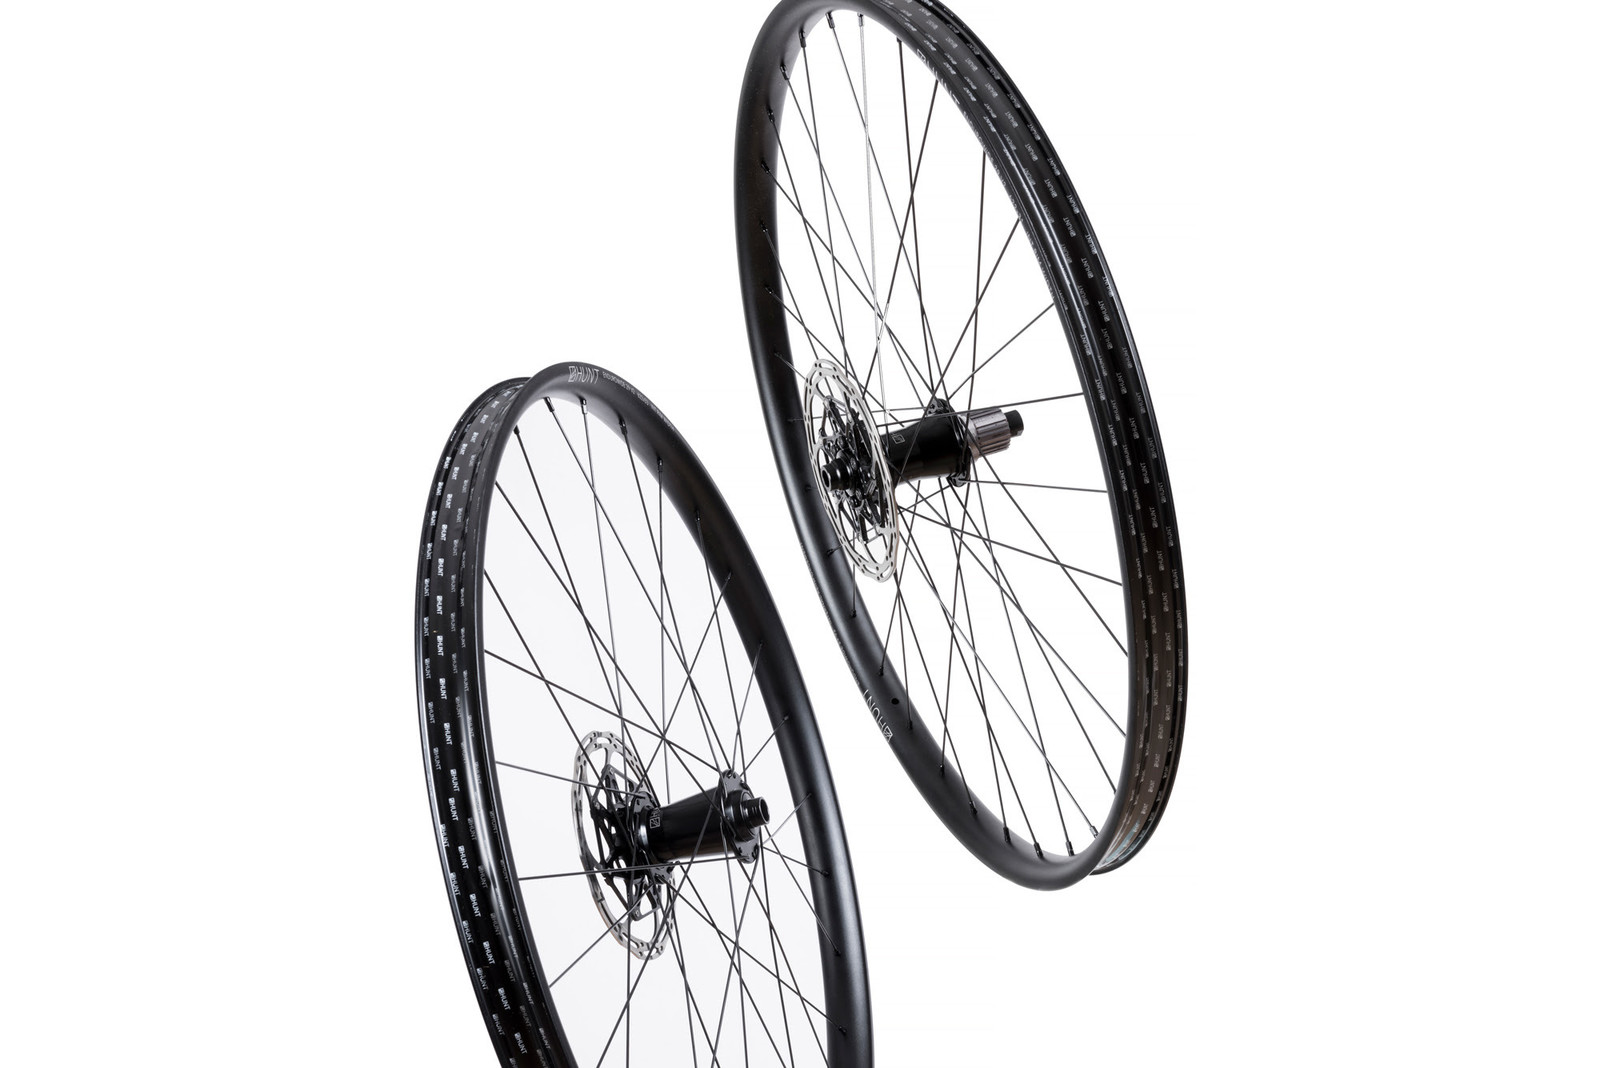 All-new HUNT Trail Wide and Enduro Wide Wheels